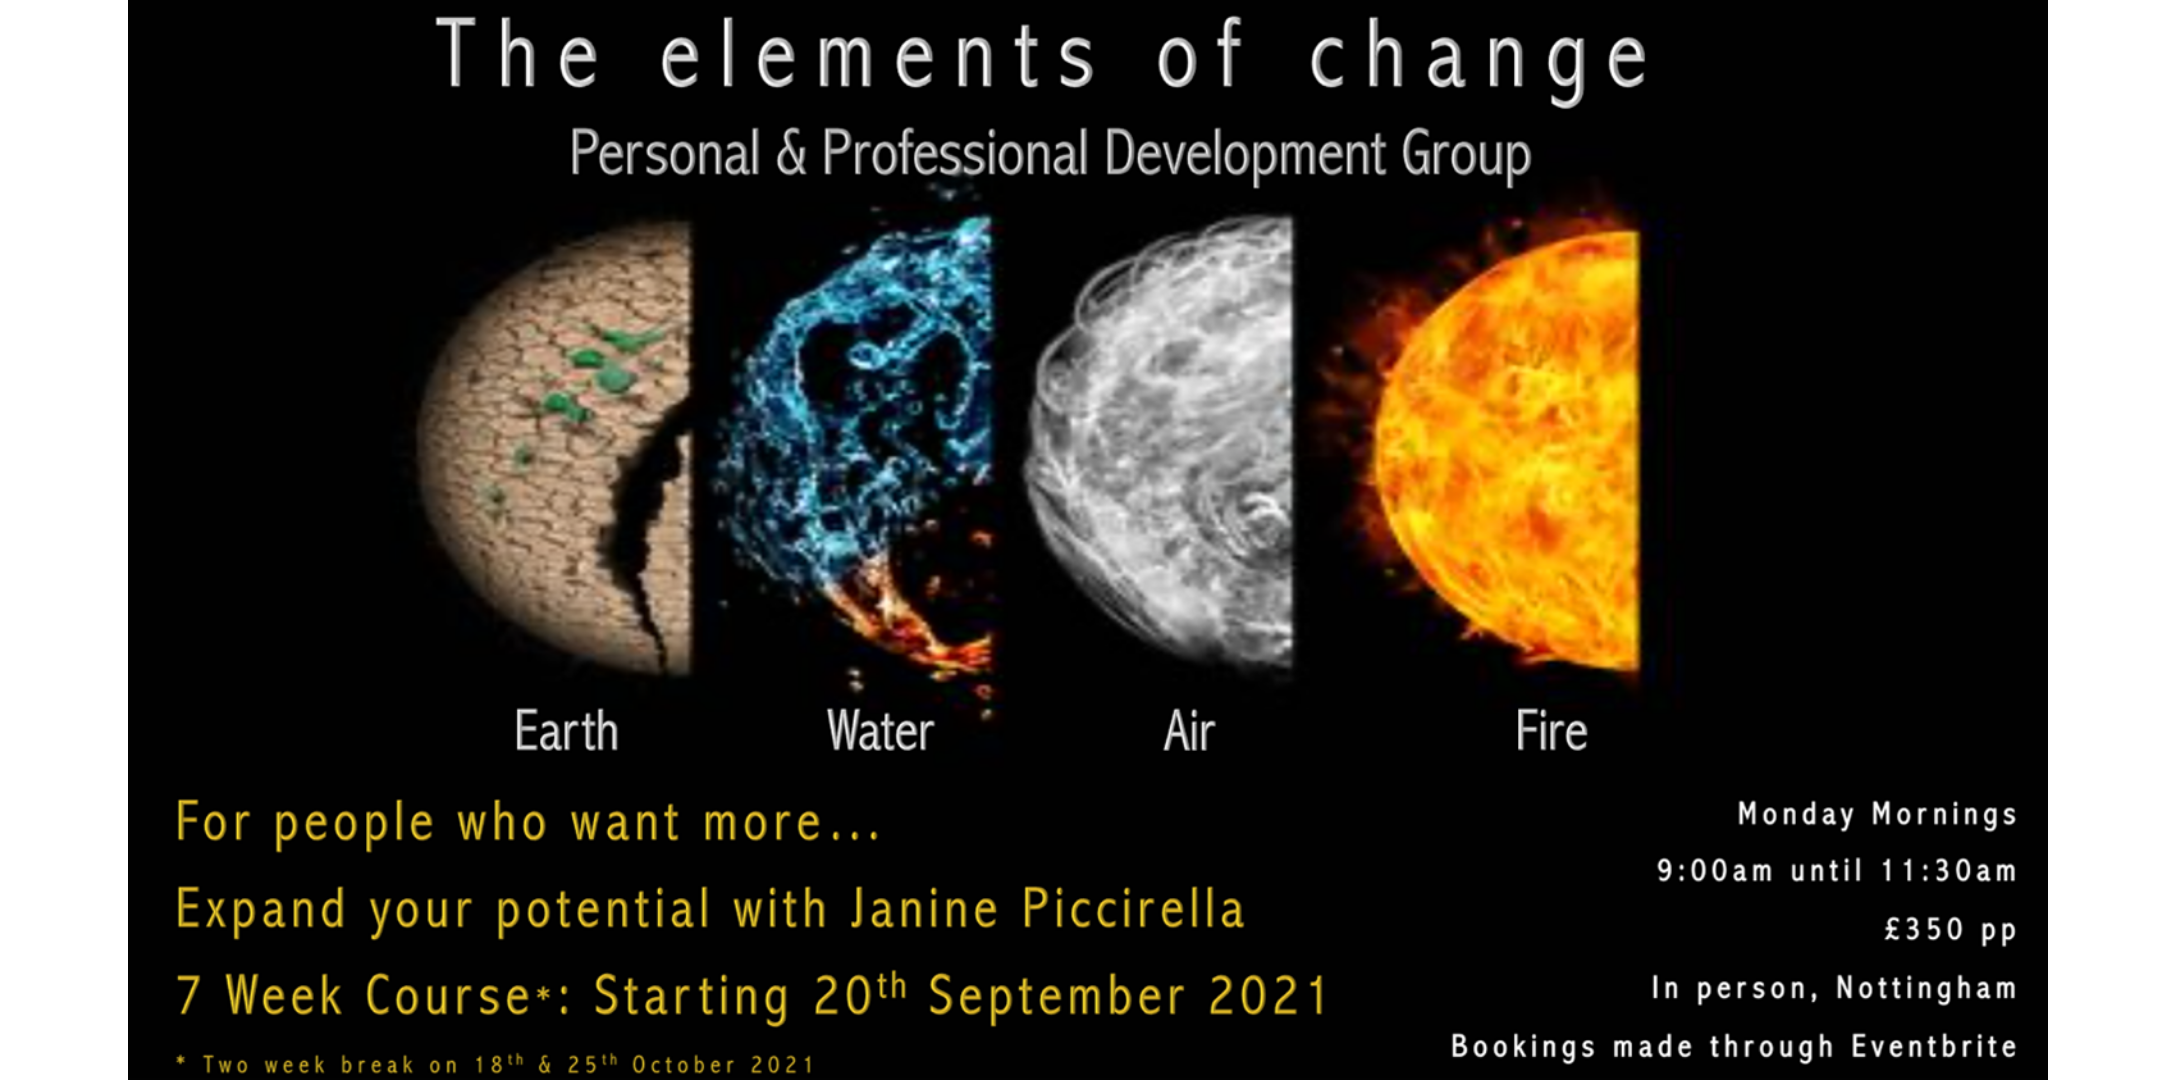 The Elements Of Change - Therapy Professional Development